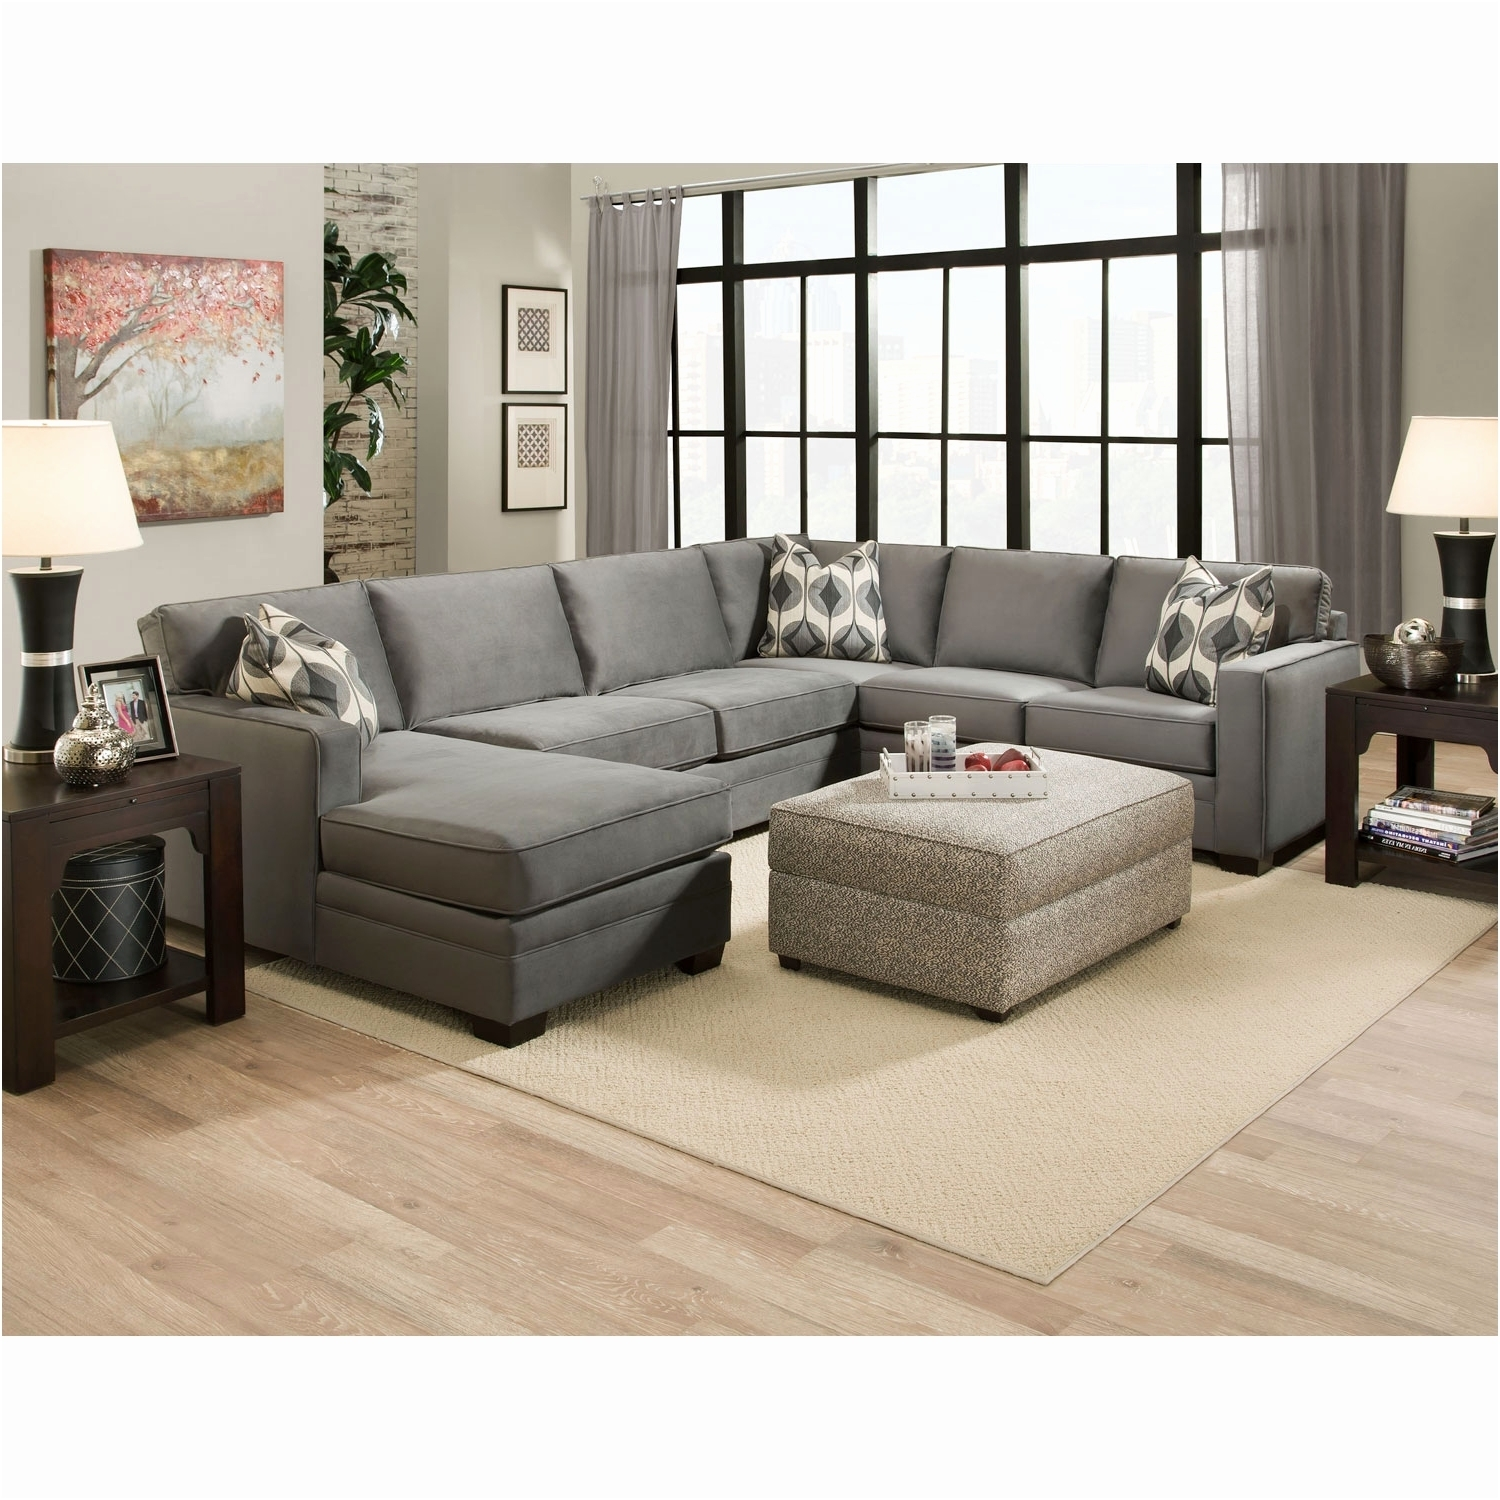 Lovely Sofa Sectionals On Sale Fresh - Sofa Furnitures | Sofa Furnitures within Kingston Ontario Sectional Sofas (Image 6 of 10)